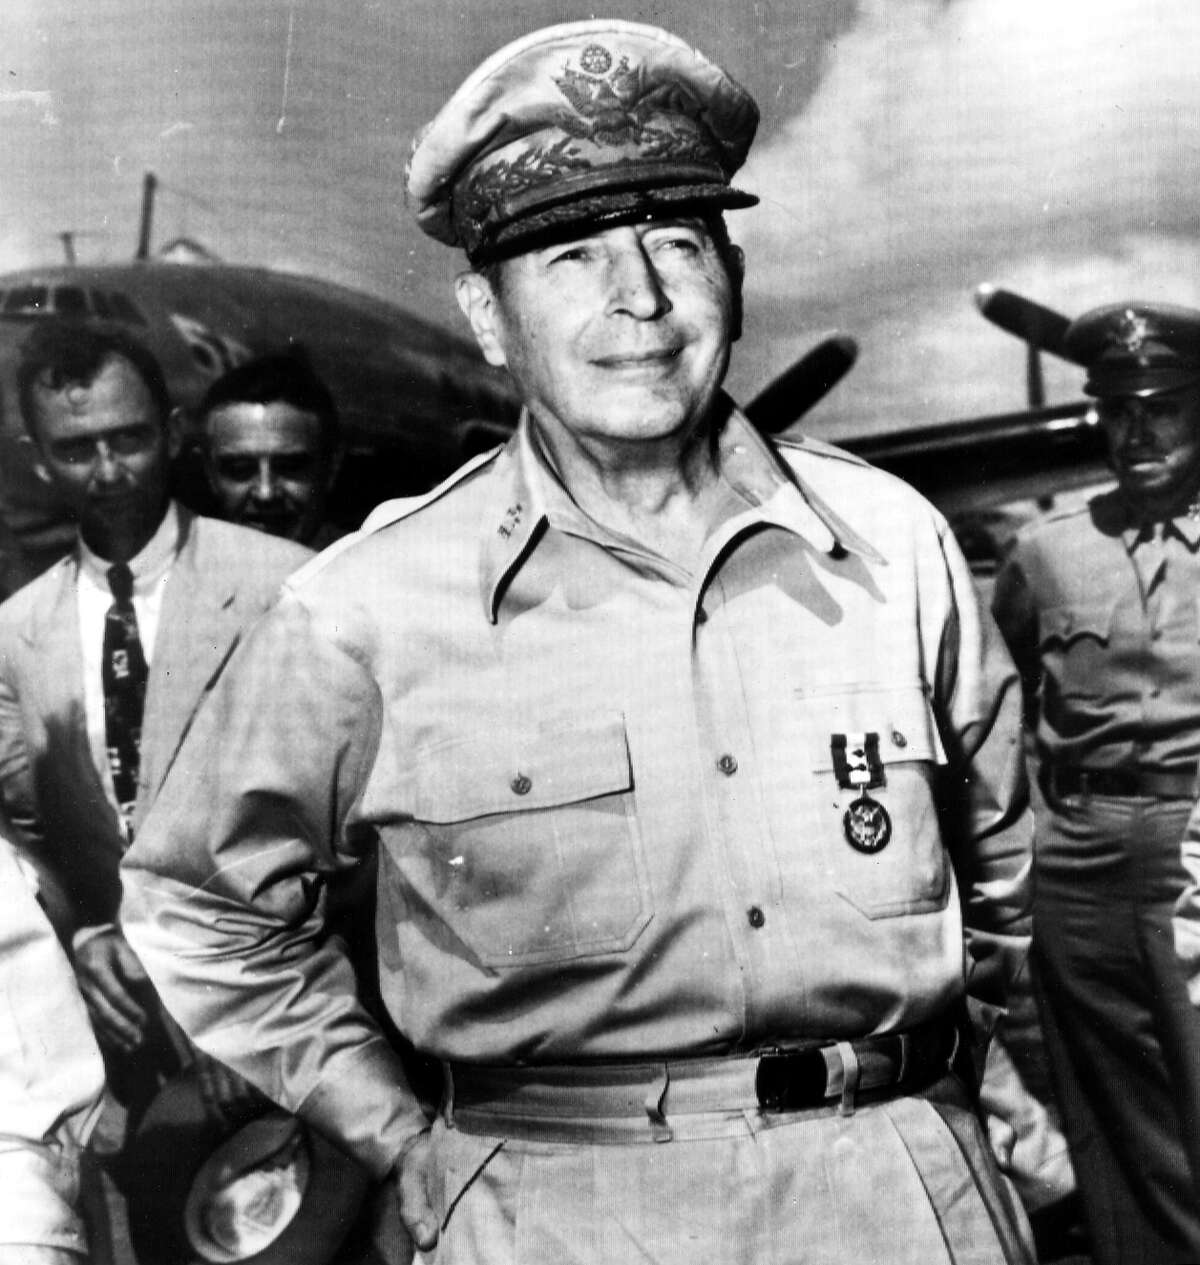 Douglas MacArthur - MacArthur was a graduate and valedictorian of the Texas Military Institute in San Antonio. He is one of only five men to ever rise to the rank of General of the Army. Receiving the Medal of Honor during the Philippines Campaign in World War II made him and his father the first father/son to win the military's highest honor.